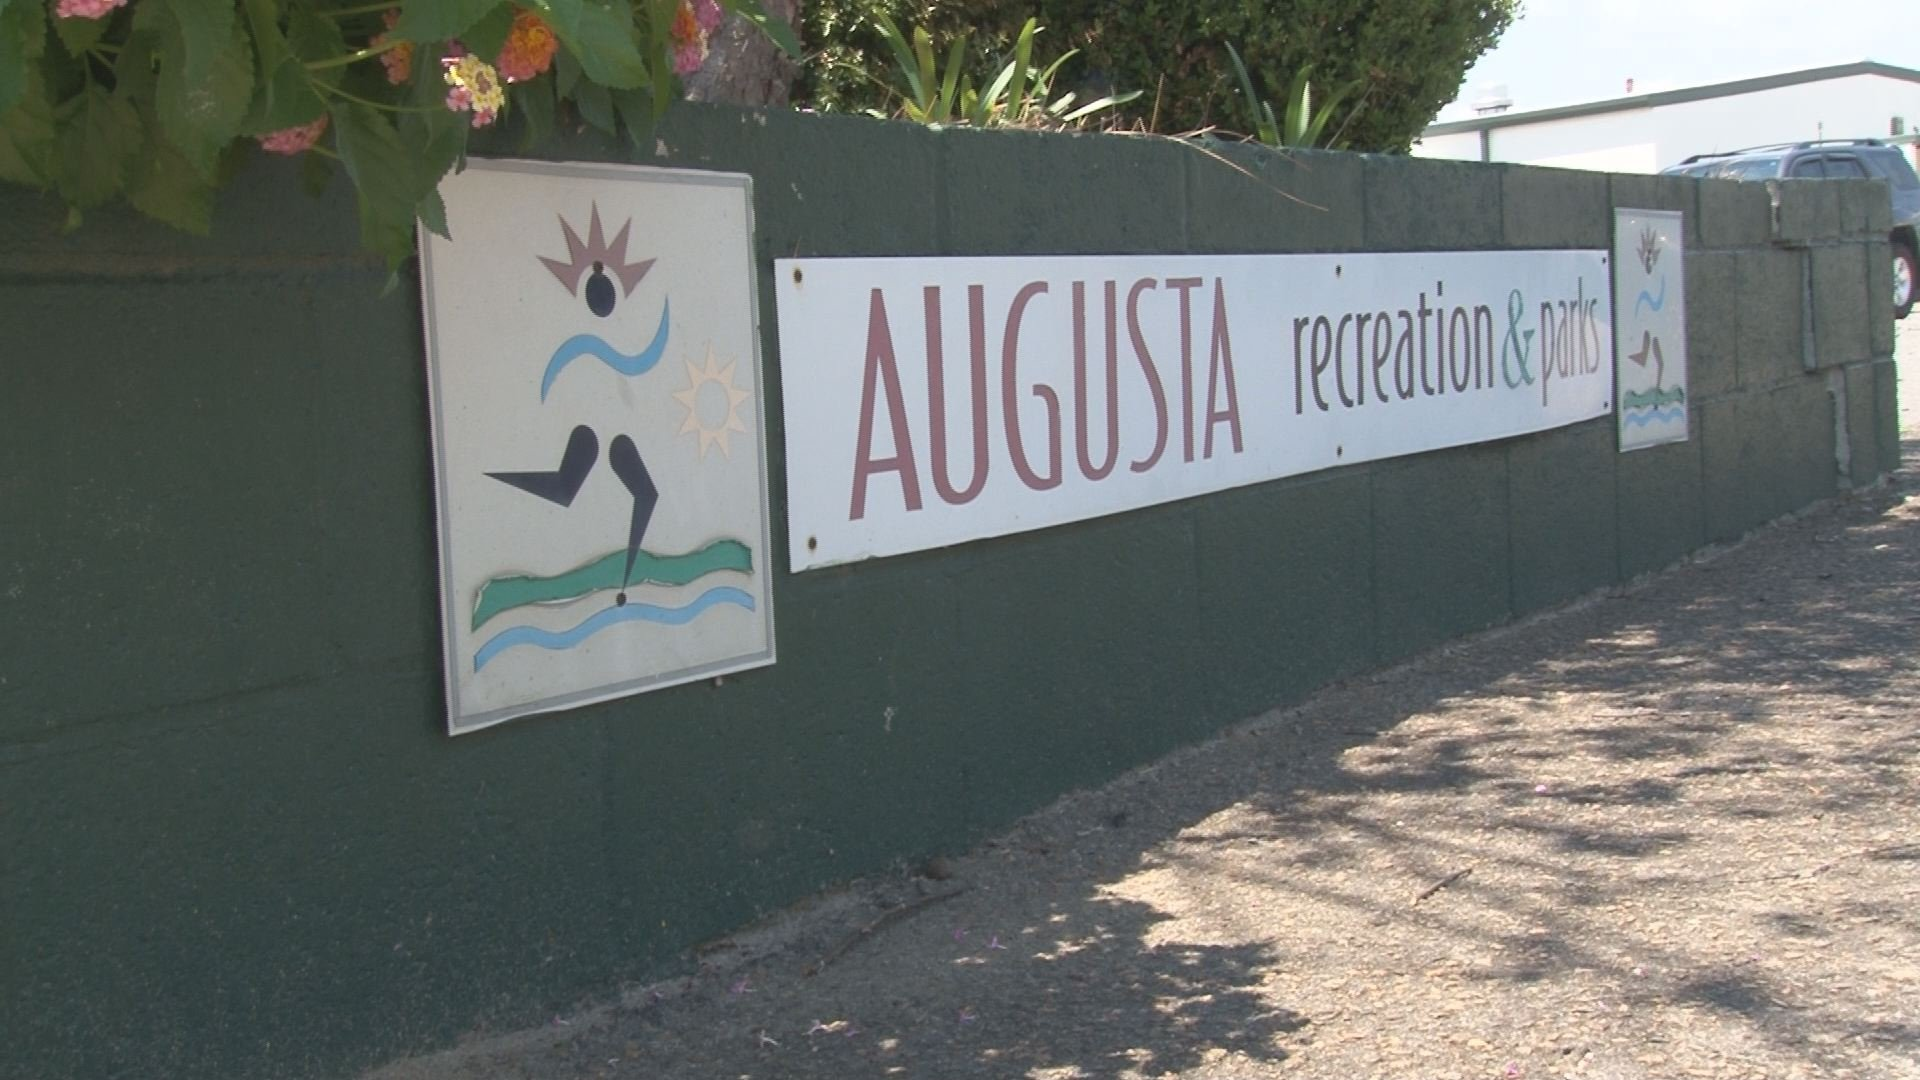 Augusta Recreation and Parks (source: WFXG)